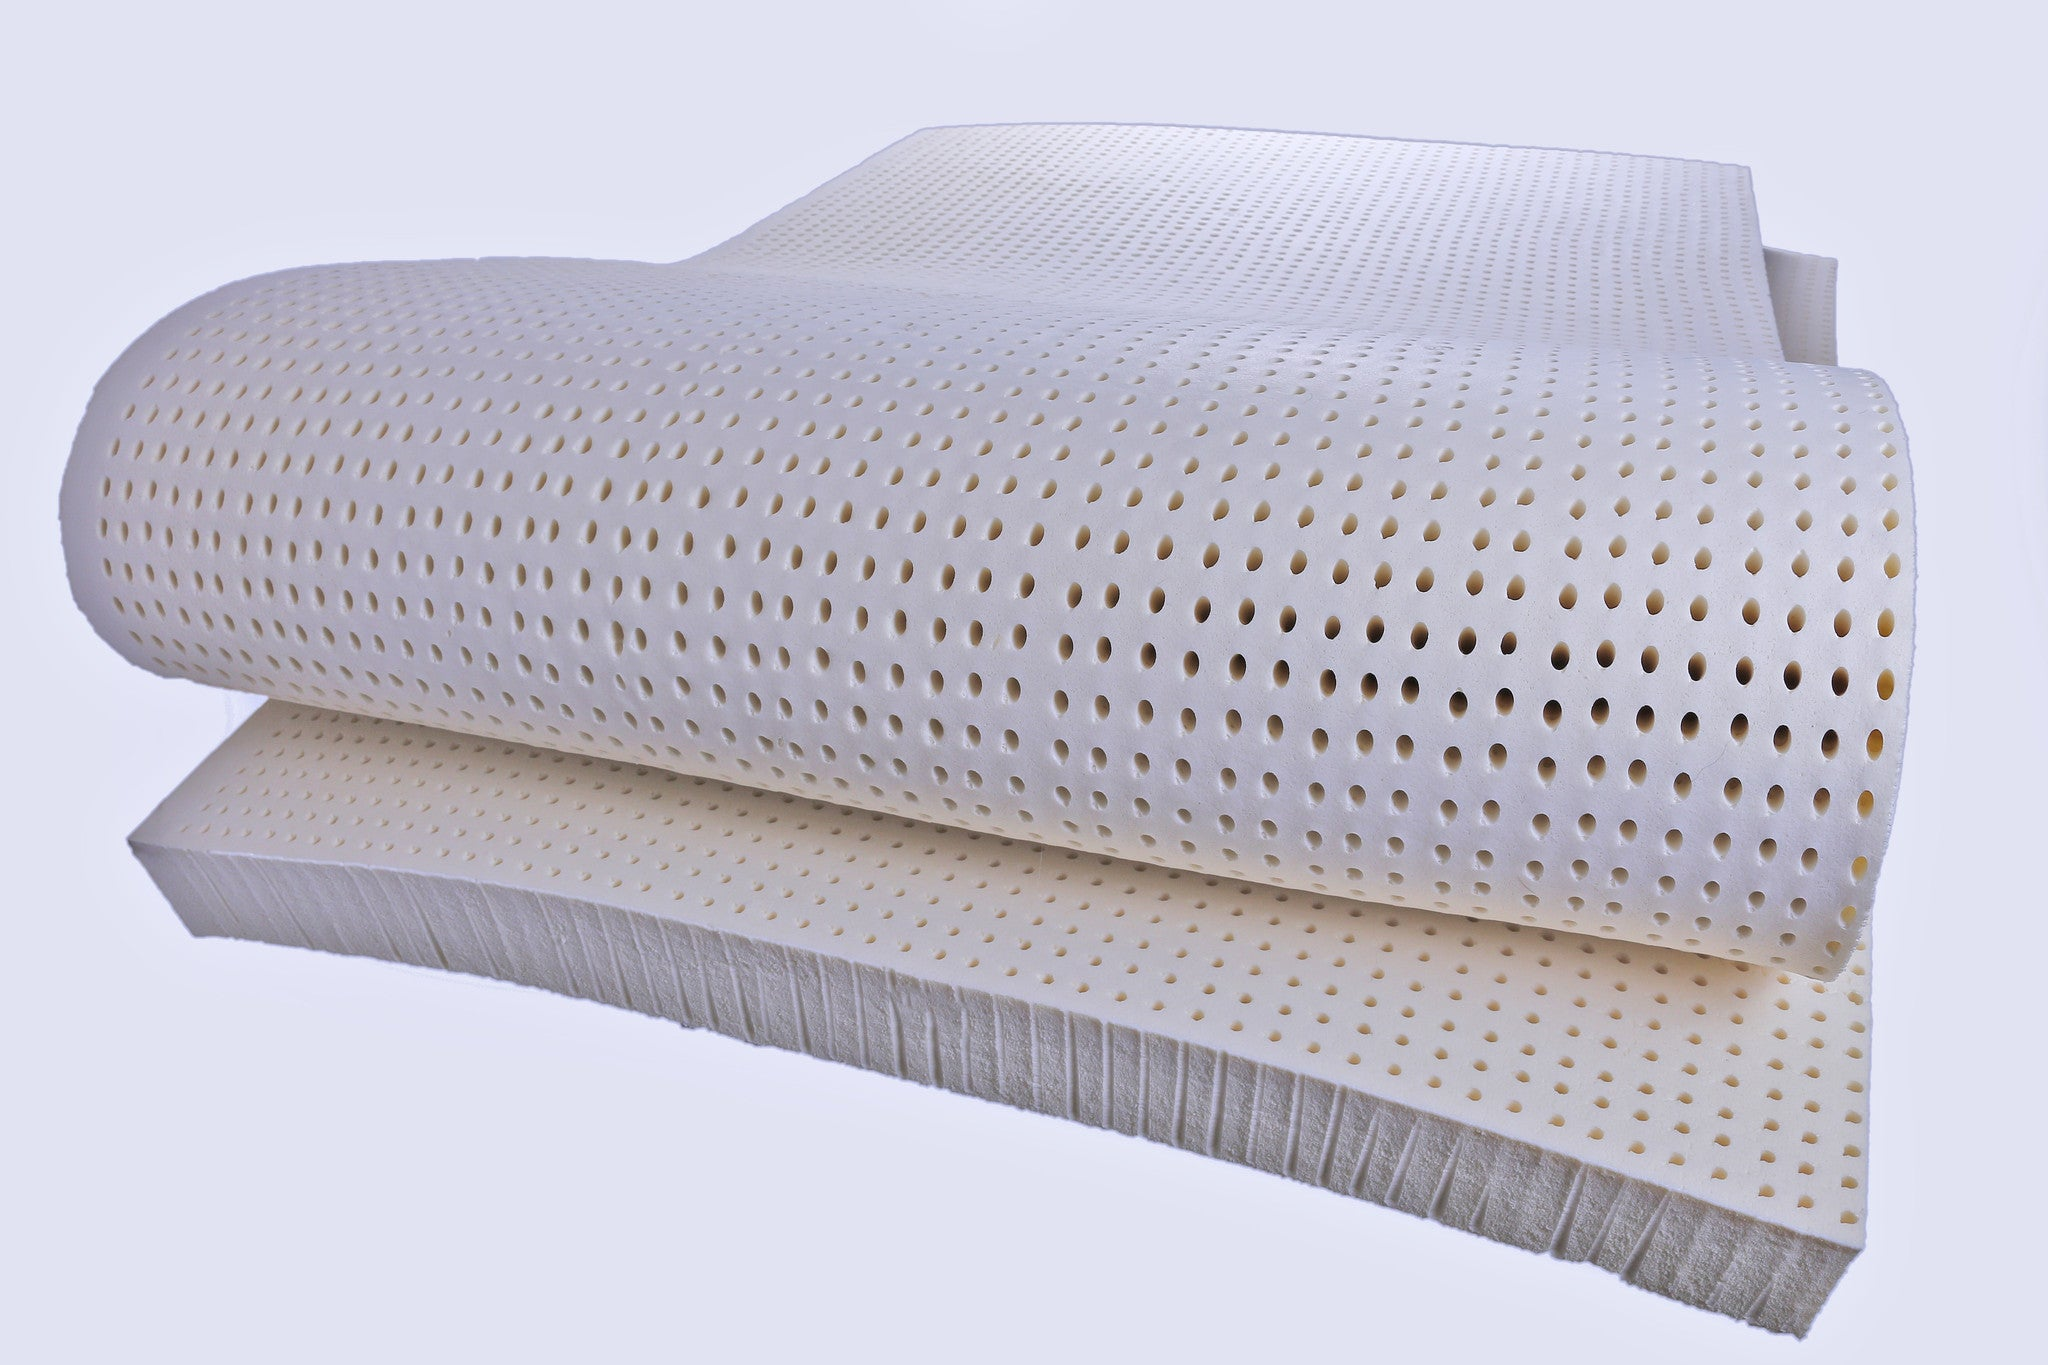 topper home mattress everyday top pad ventilated reviewed for egg crate pillow foam best